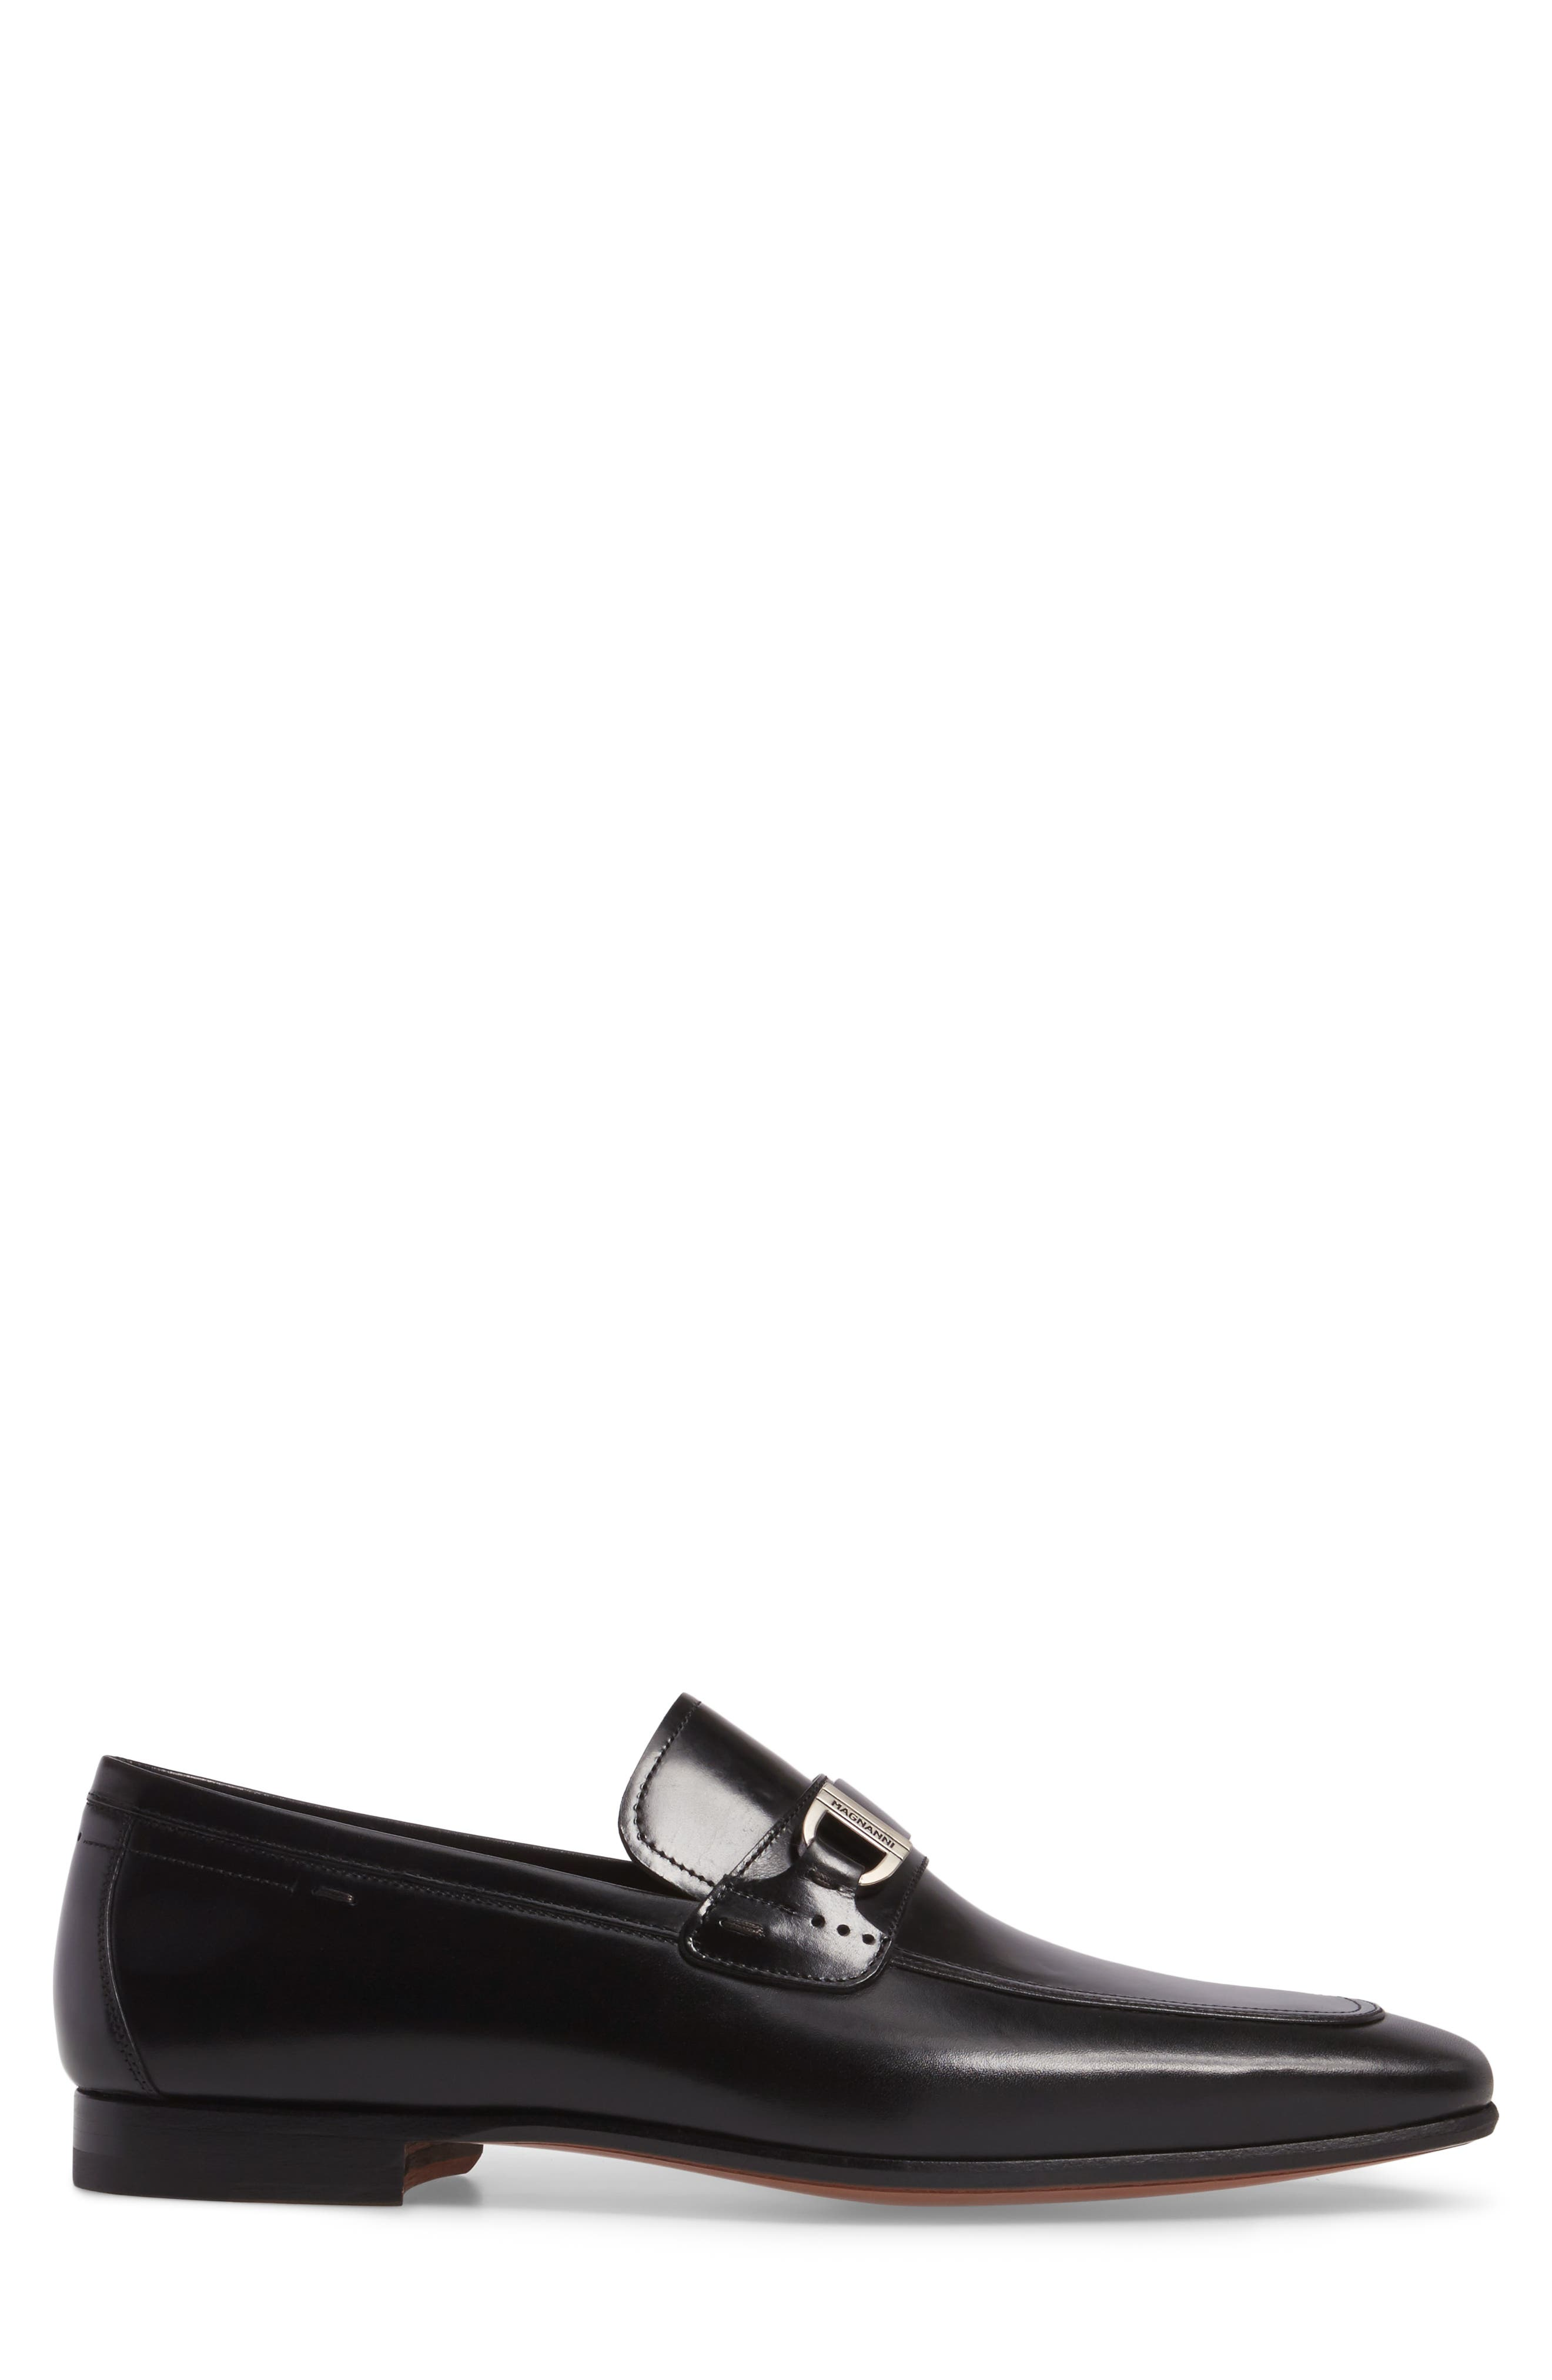 Rico Bit Venetian Loafer,                             Alternate thumbnail 3, color,                             001